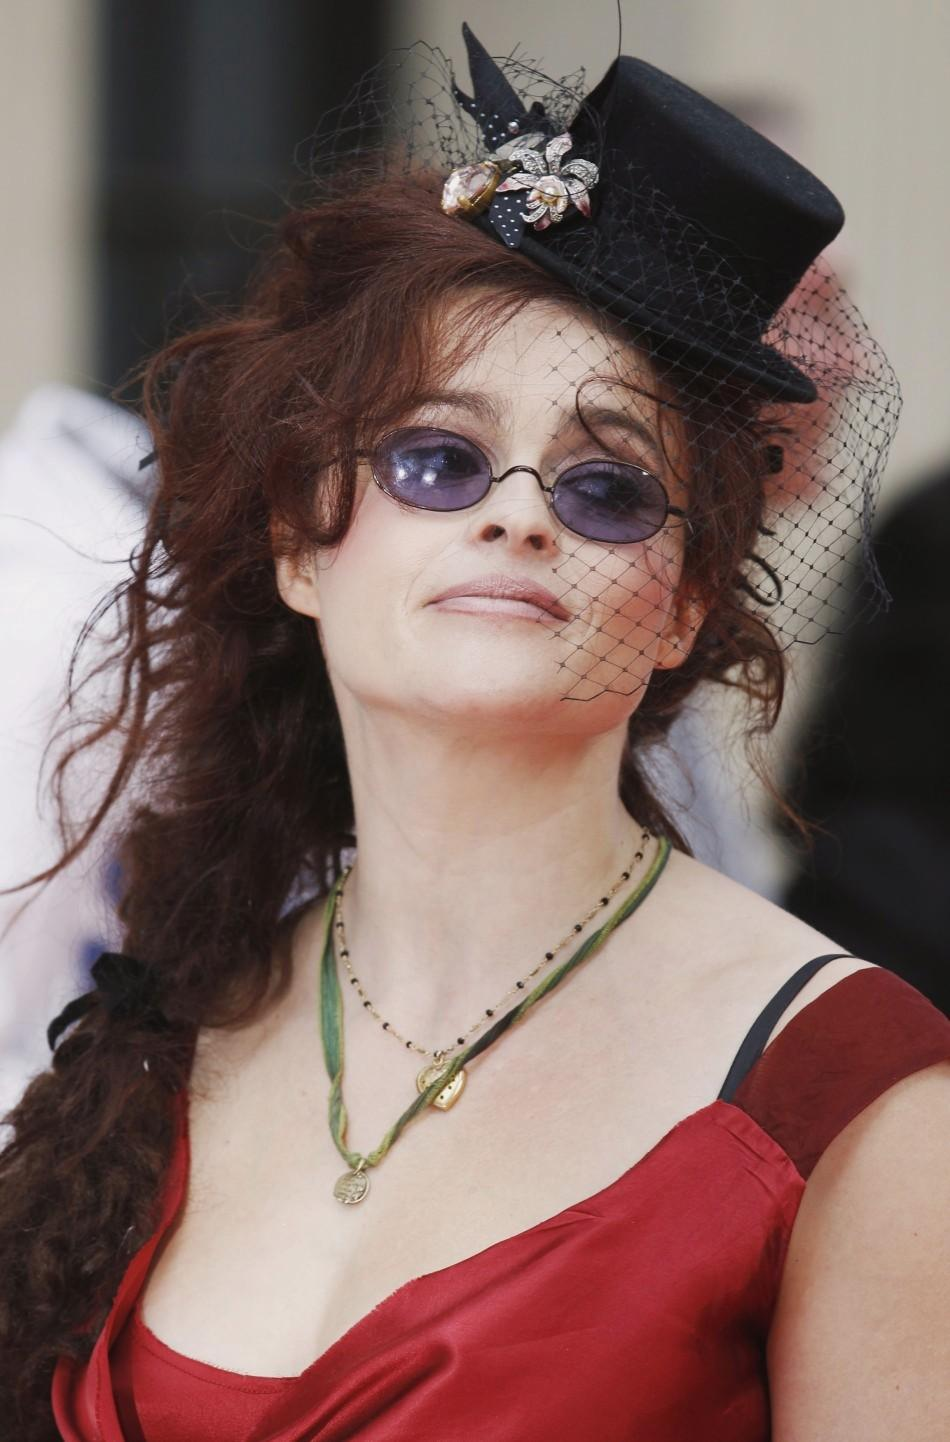 Helena Bonham Carter Wallpaper HD Download Helena Bonham Carter